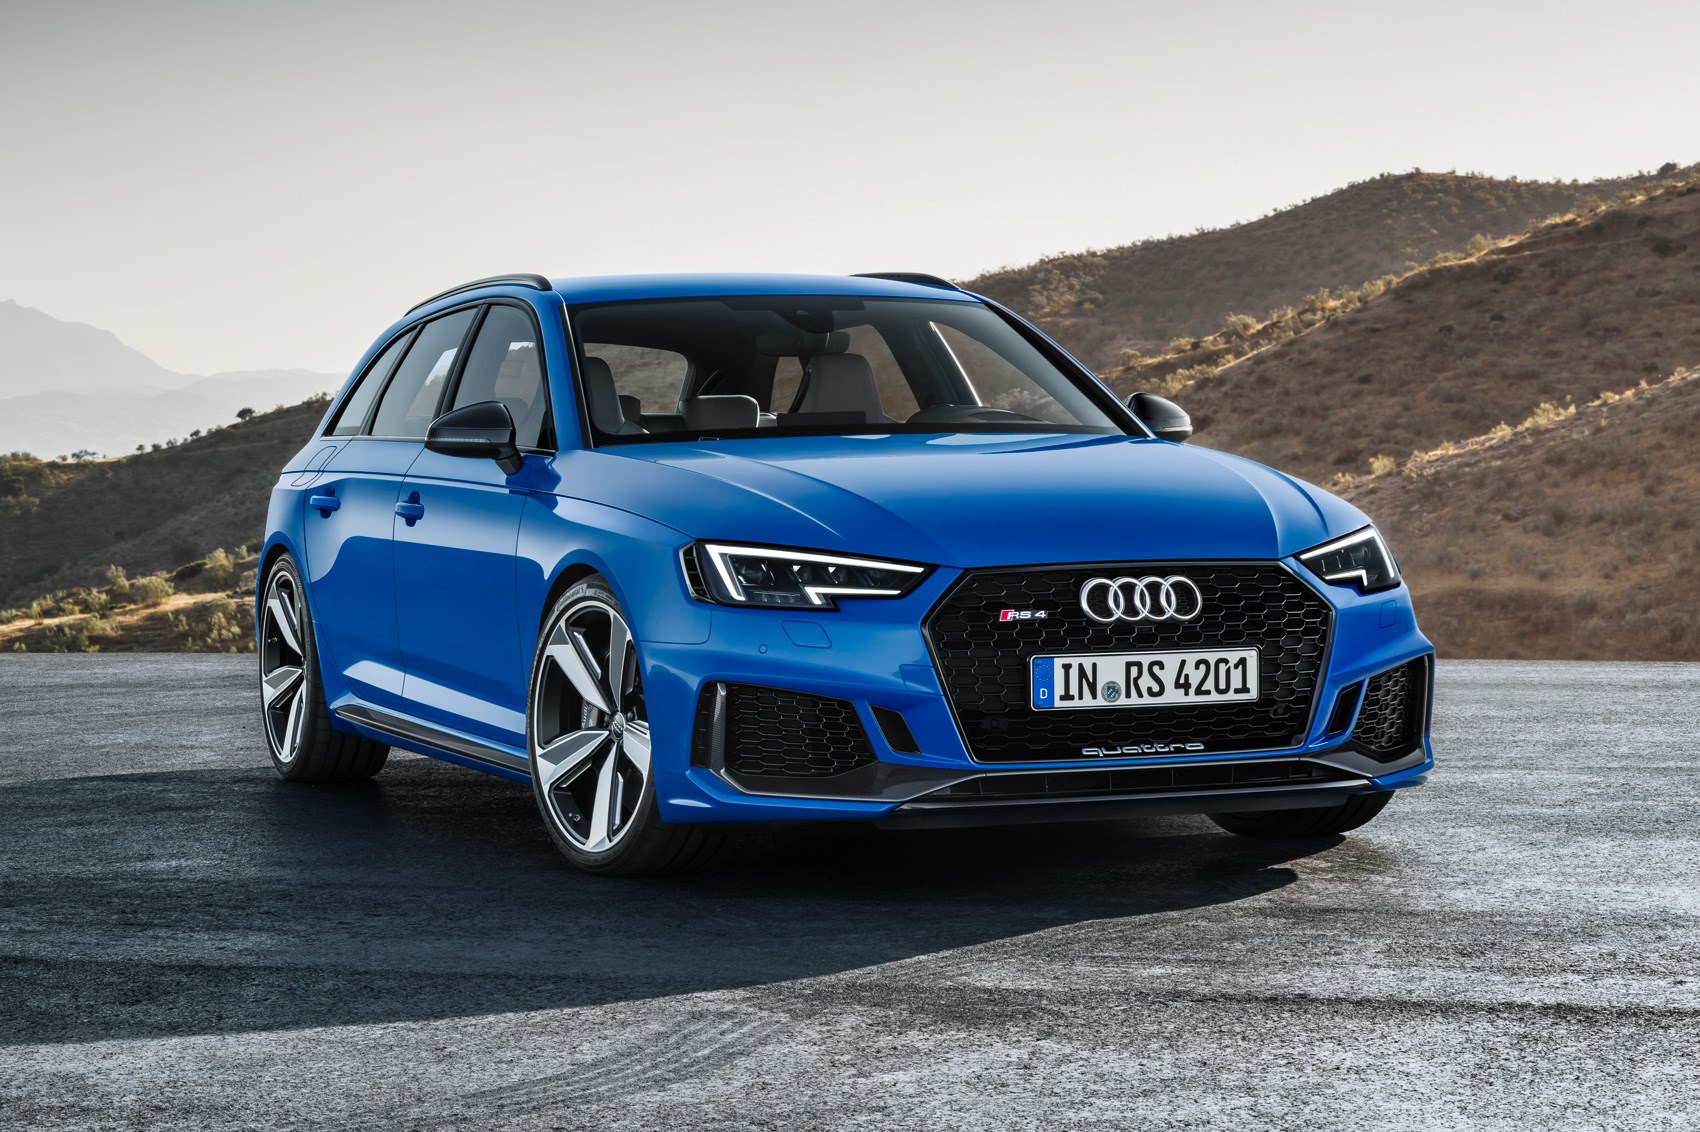 Audi RS4 Avant RETURNS with 444bhp for Audi's Hot Estate